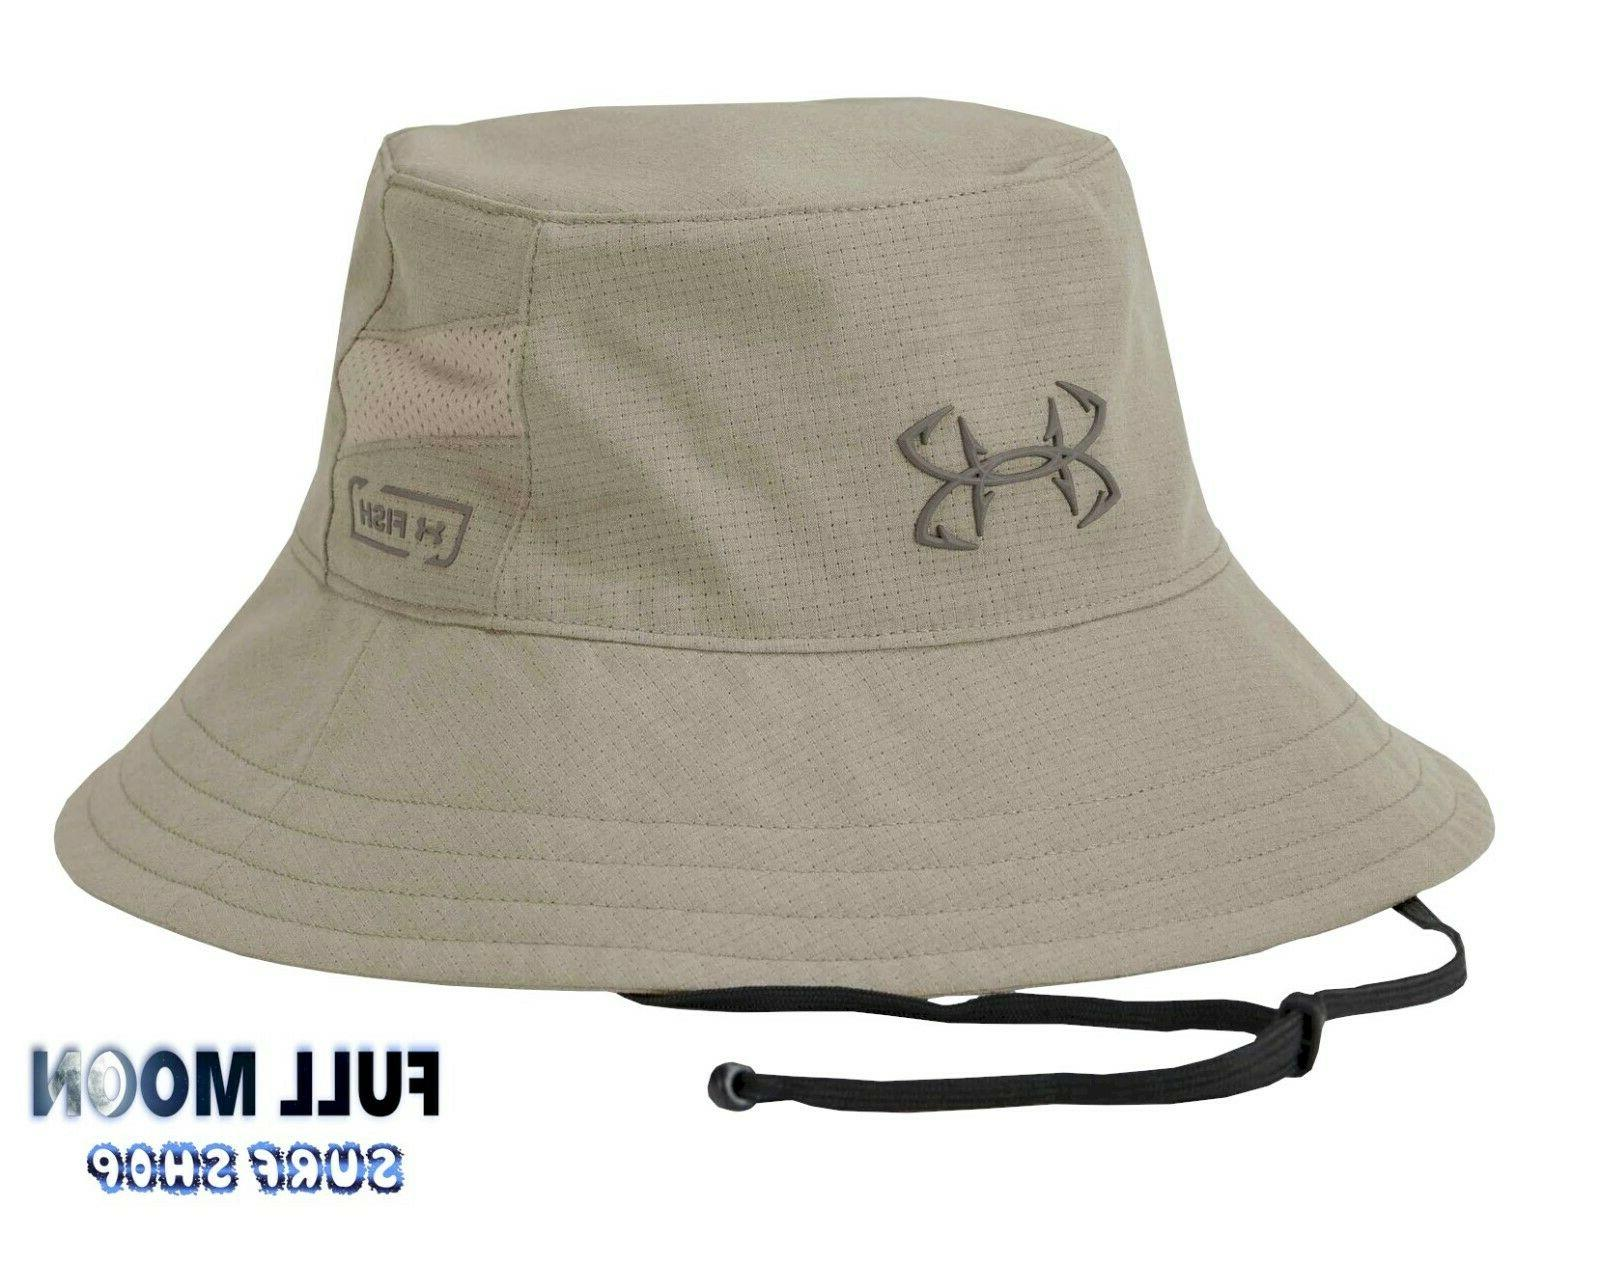 New Under Armour ArmourVent Thermocline Bucket Cap